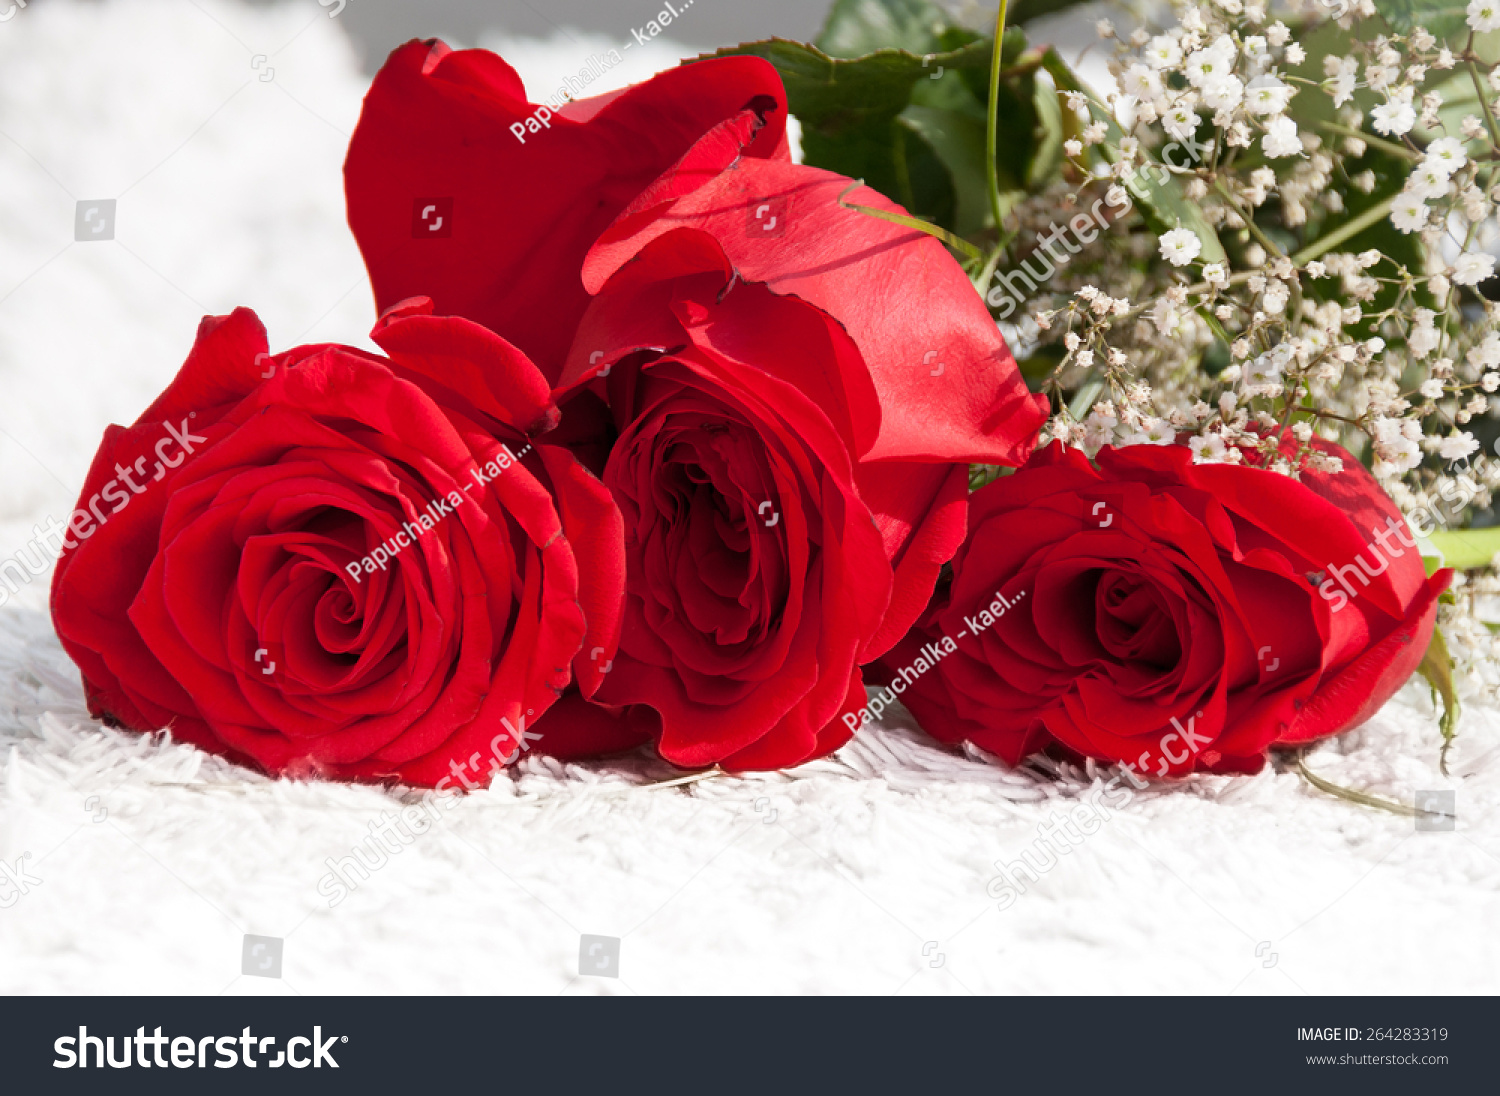 Bunch Red Roses Little White Flowers Stock Photo (Royalty Free ...